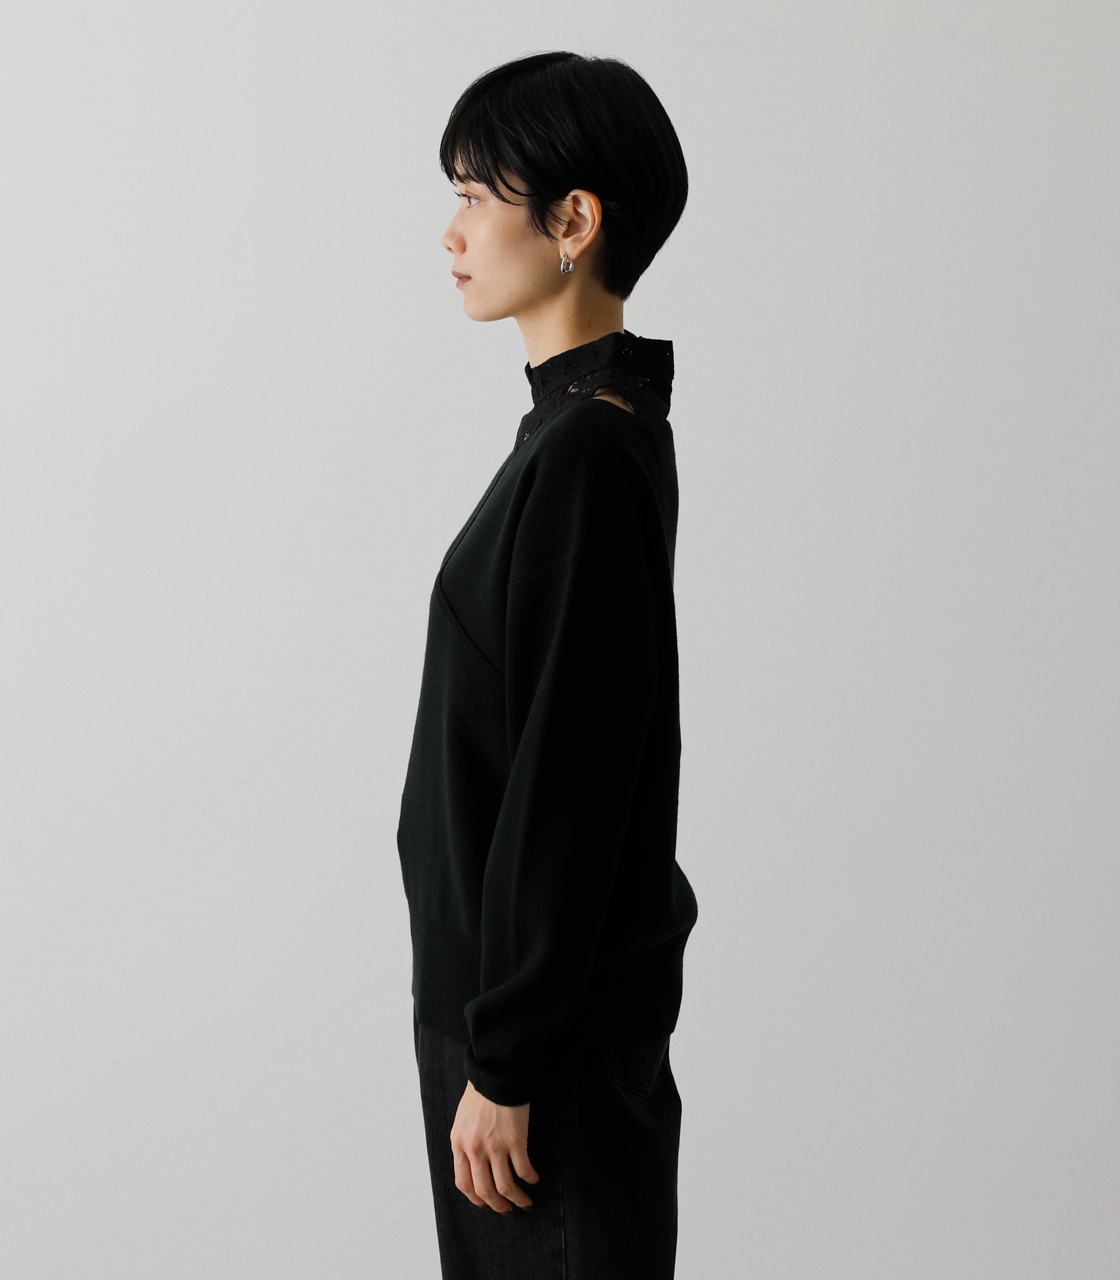 LACE DOCKING CACHE-COEUR TOPS/レースドッキングカシュクールトップス 詳細画像 BLK 6